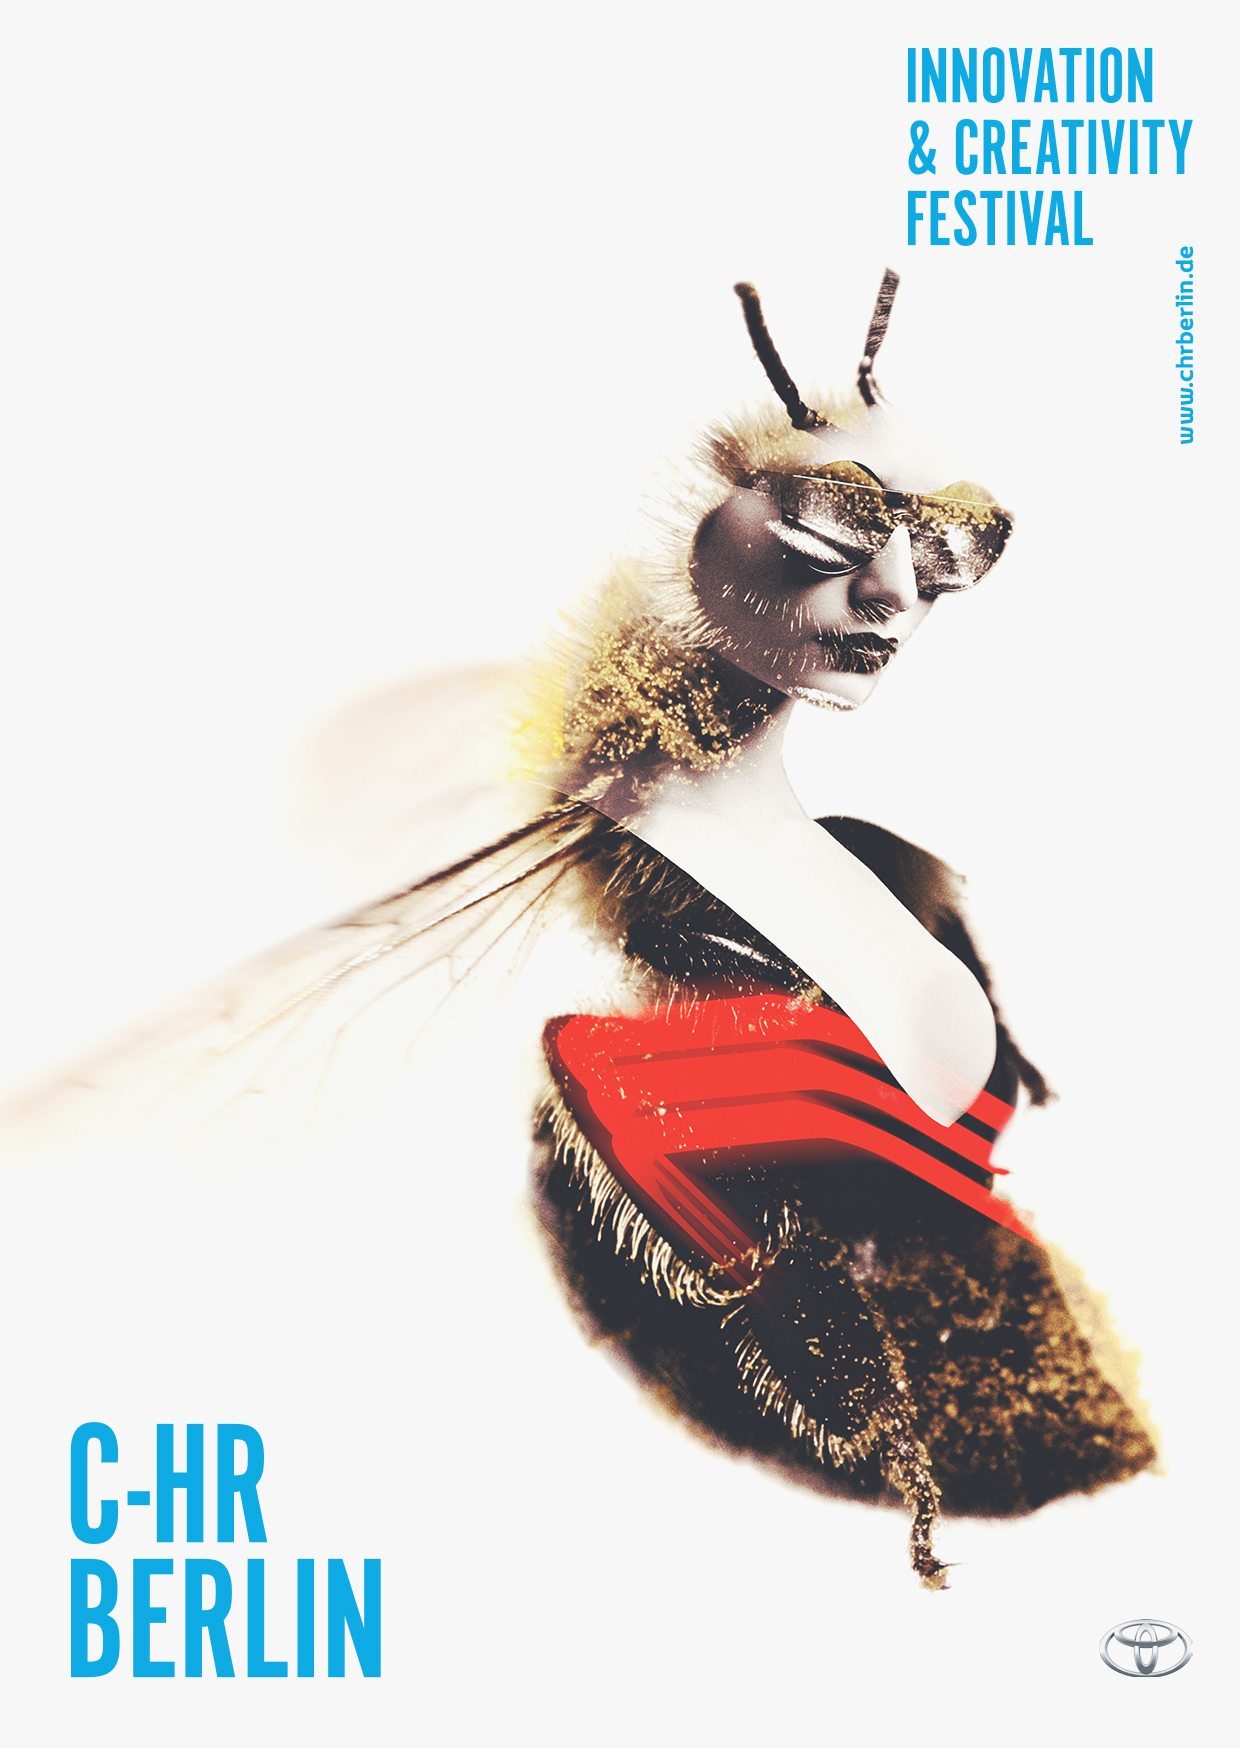 C-HR_BERLIN_A6_Postcards_1-2.jpg